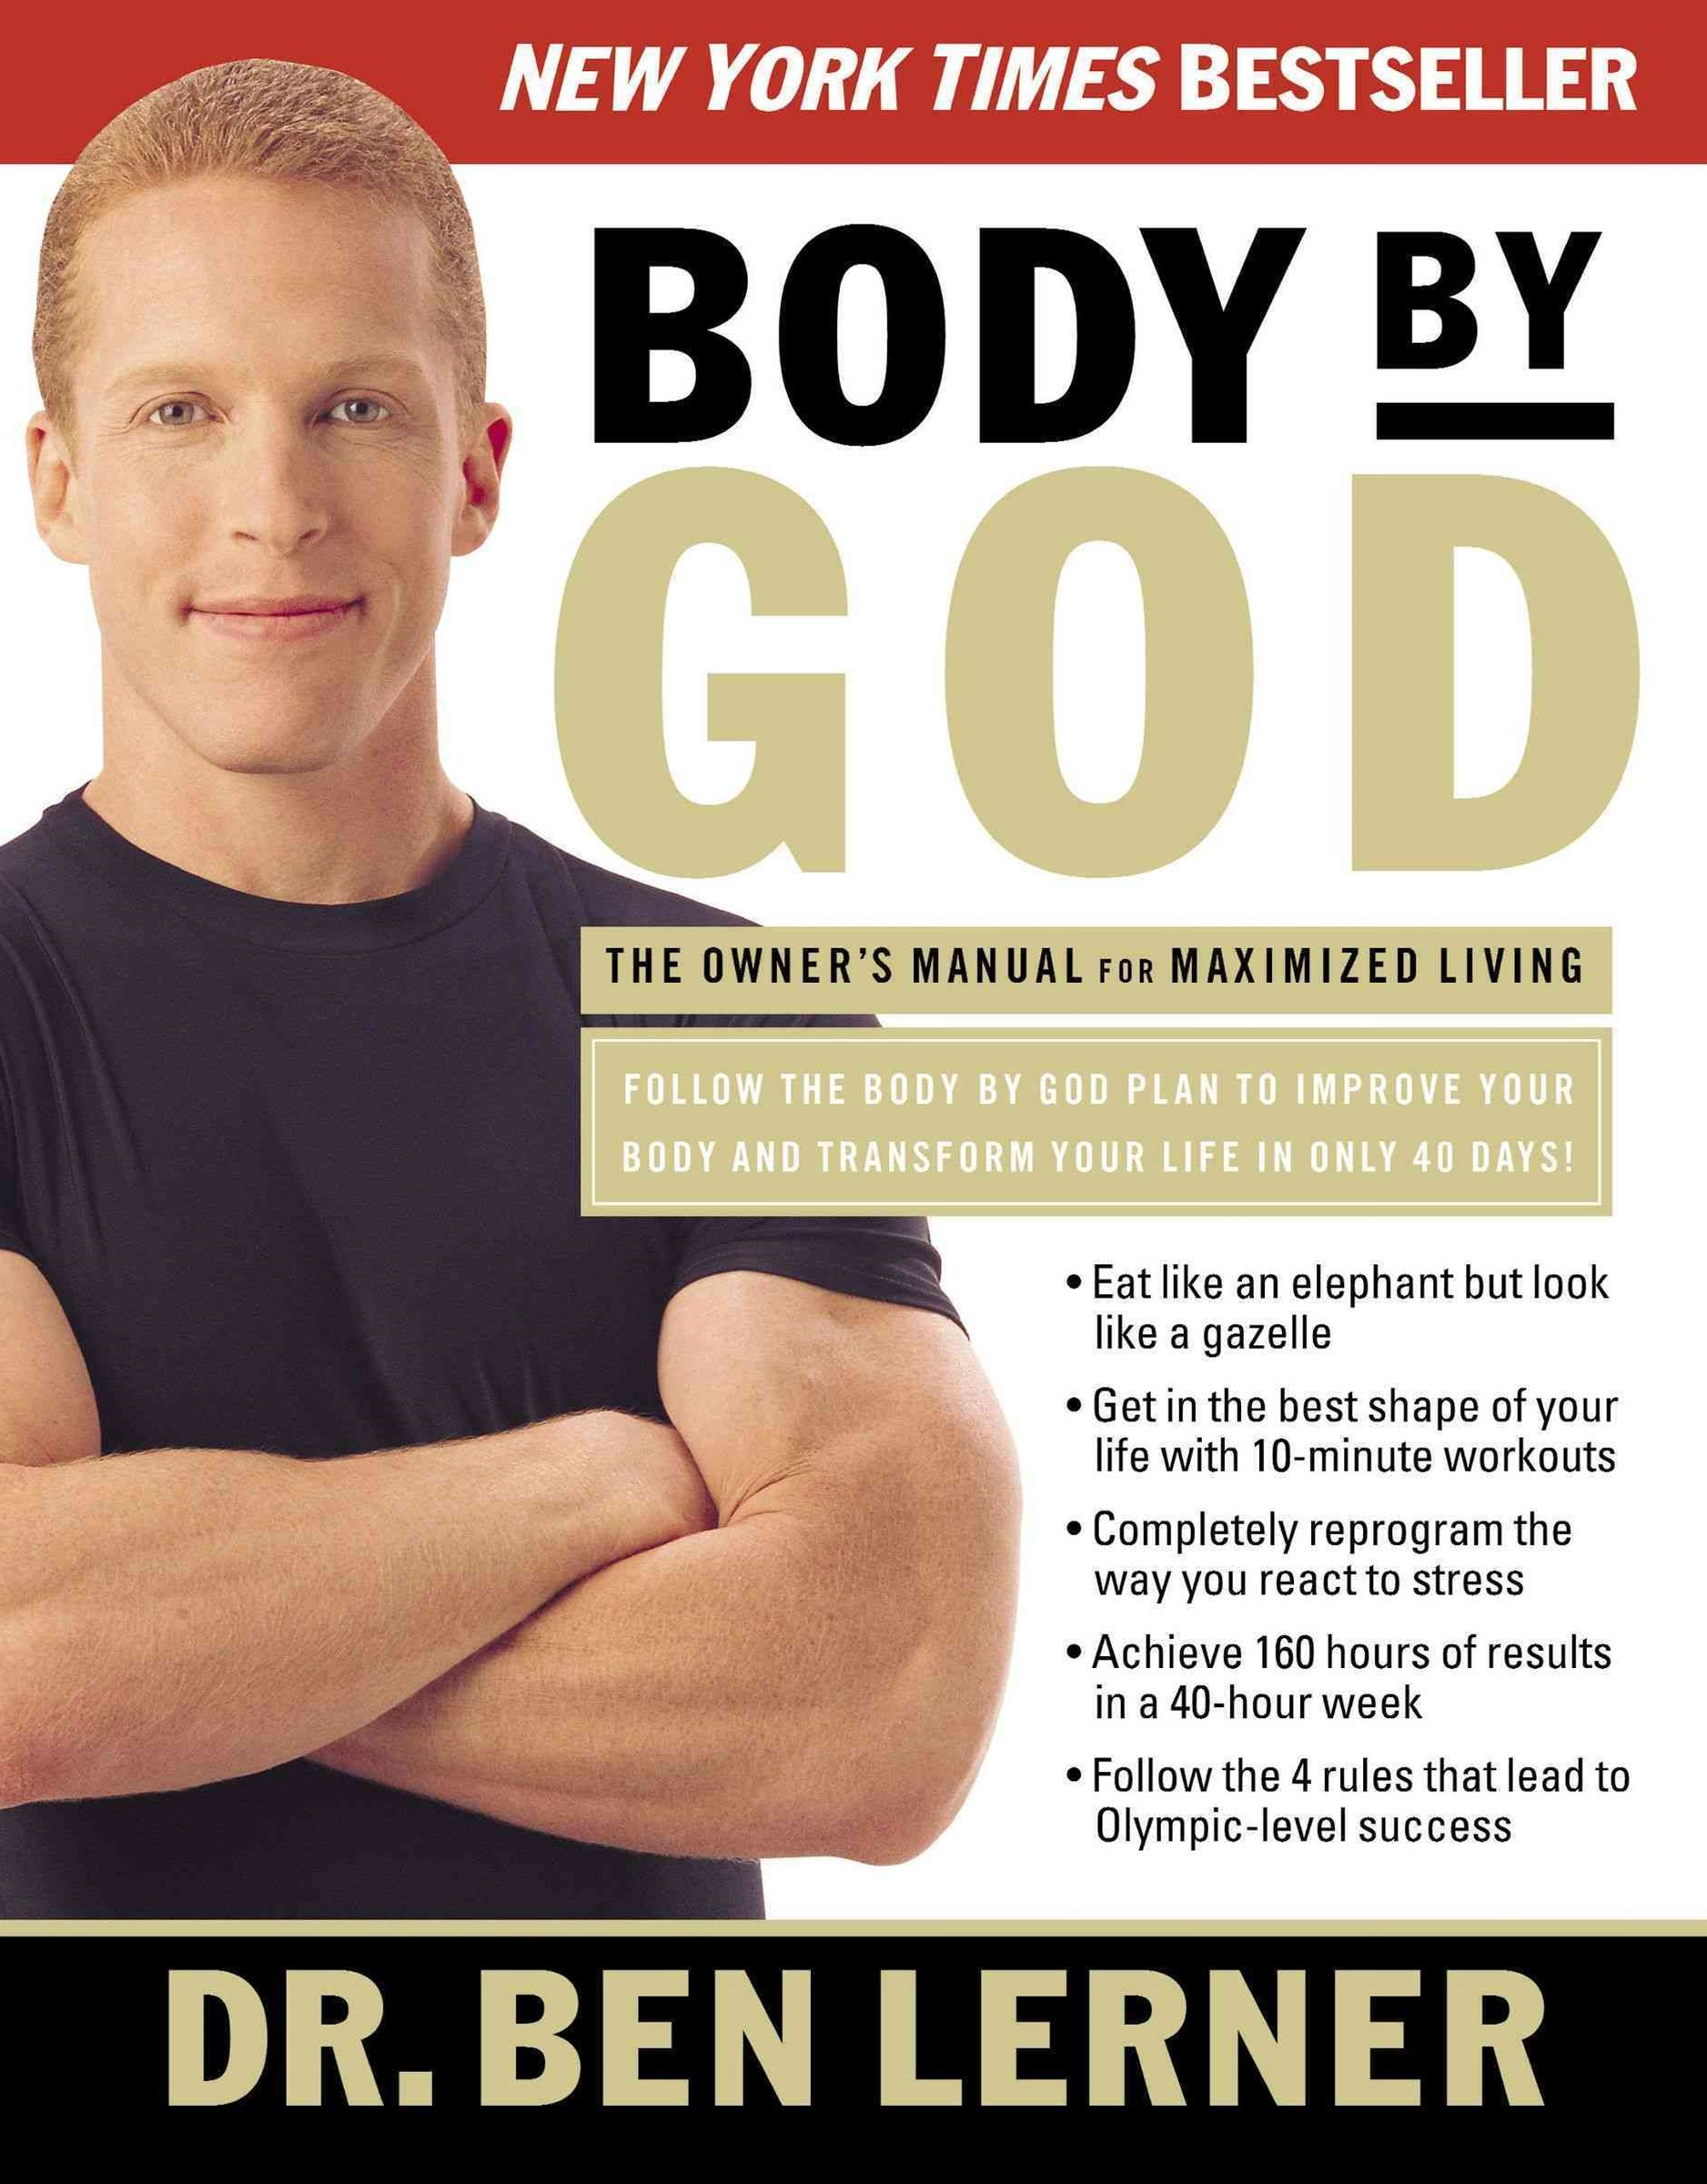 Body by God